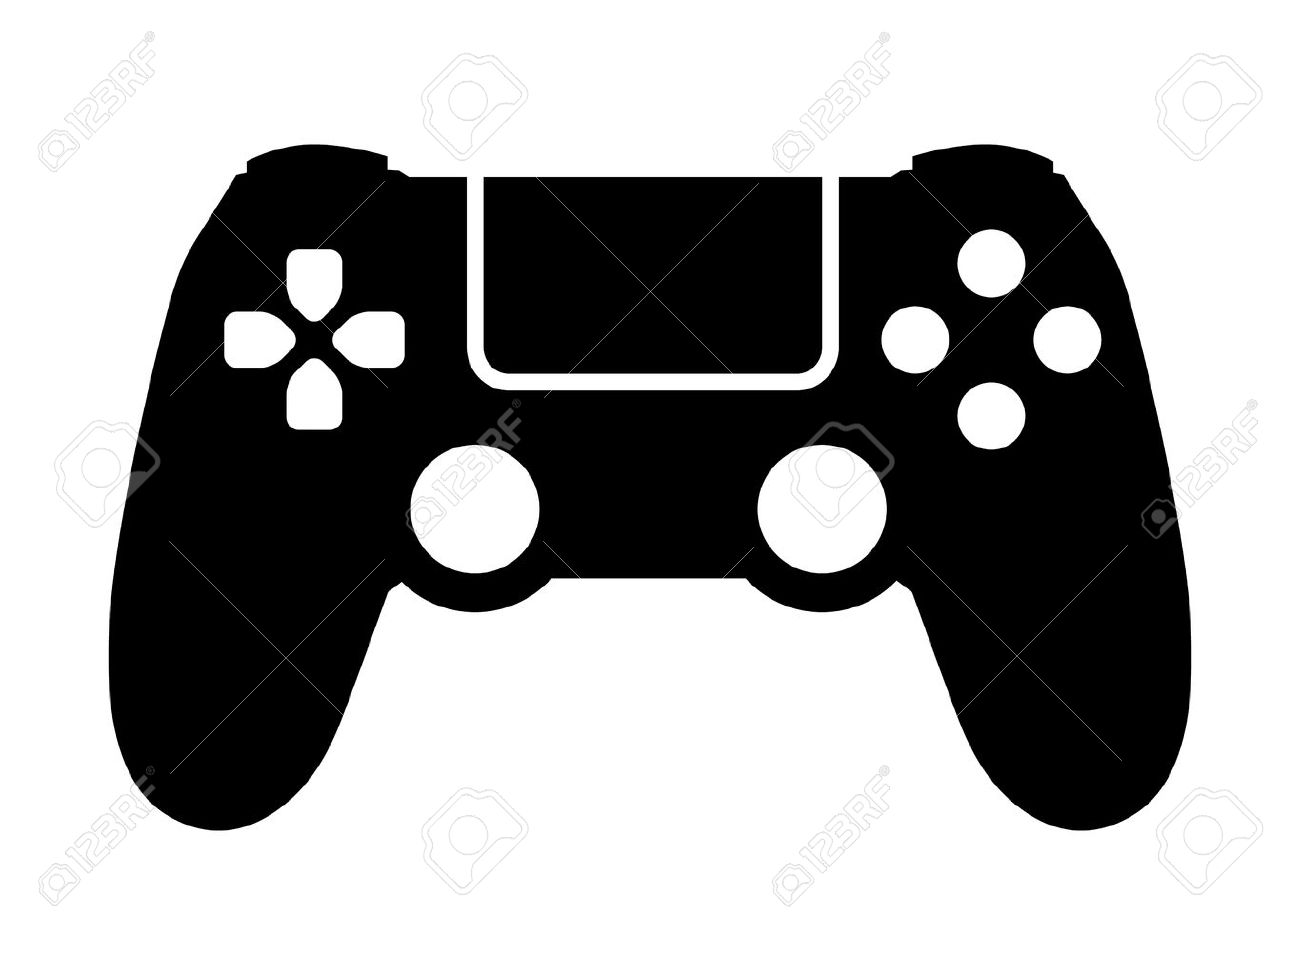 video game controller gamepad flat icon for apps and websites rh 123rf com game controller vector ai game controller vector free download